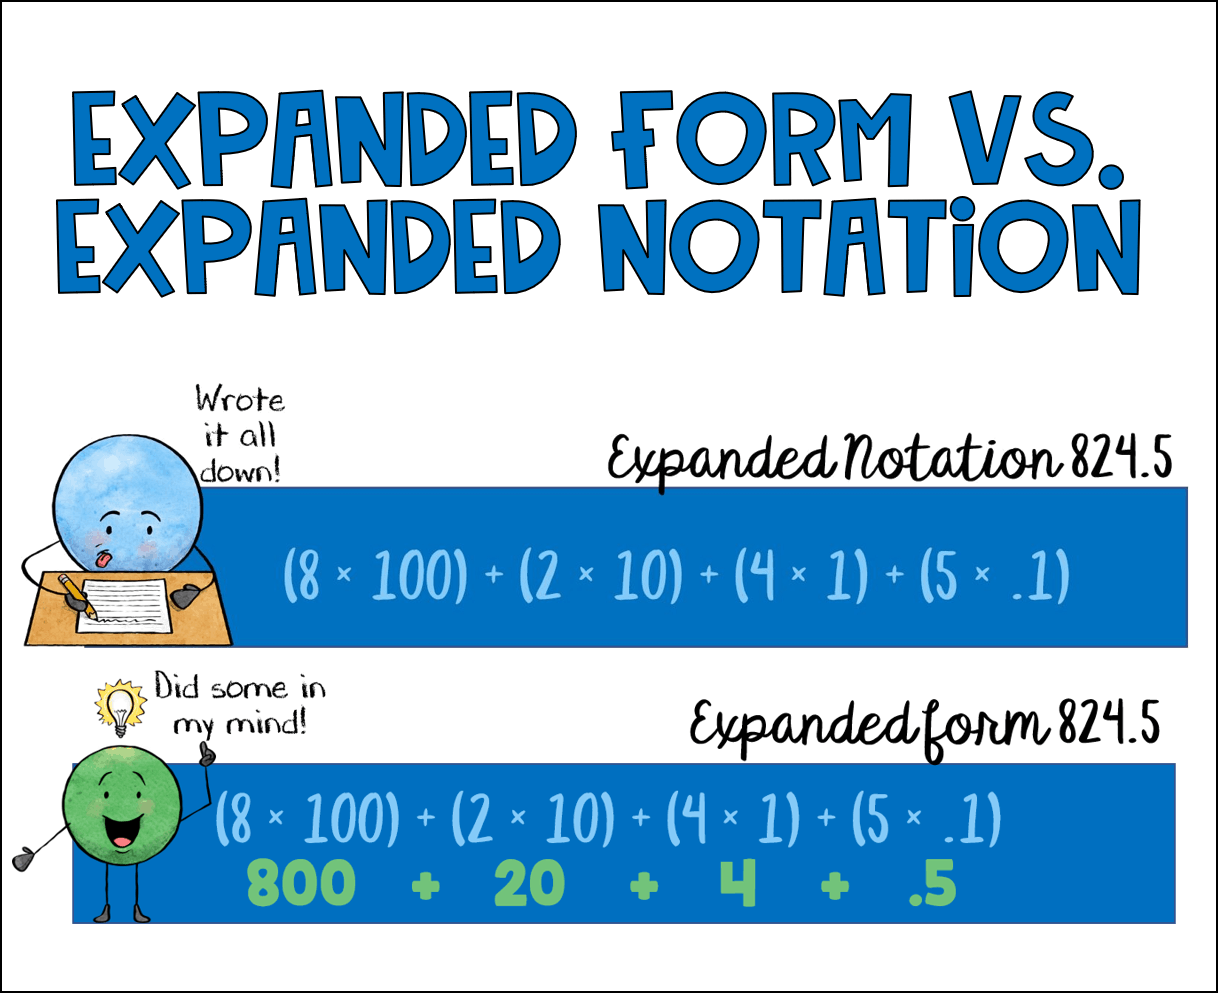 expanded form notation  Expanded Notation vs. Expanded Form • Cassi Noack